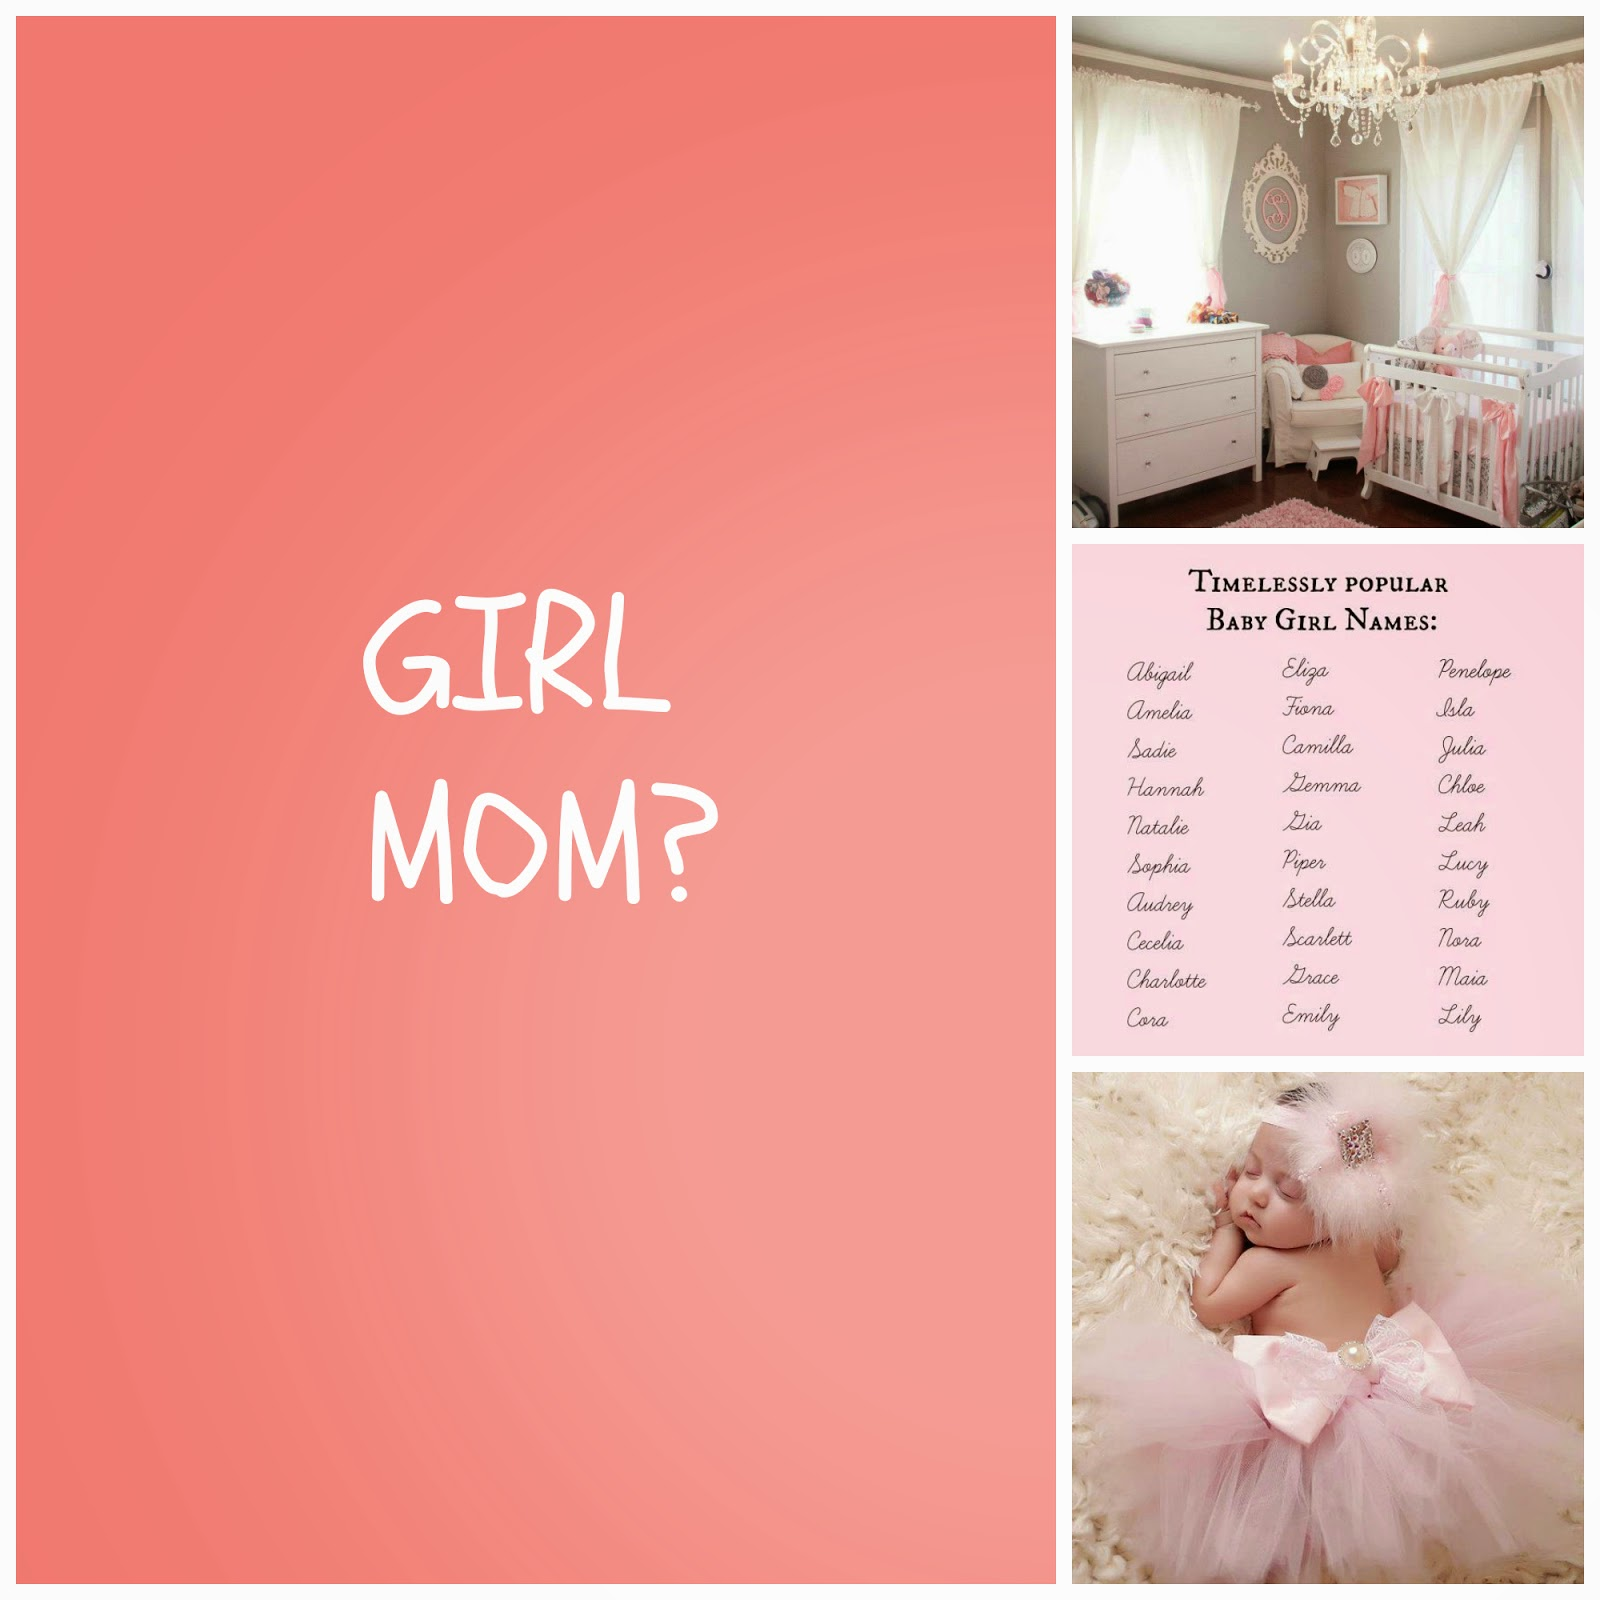 Girl Mom vs Boy Mom